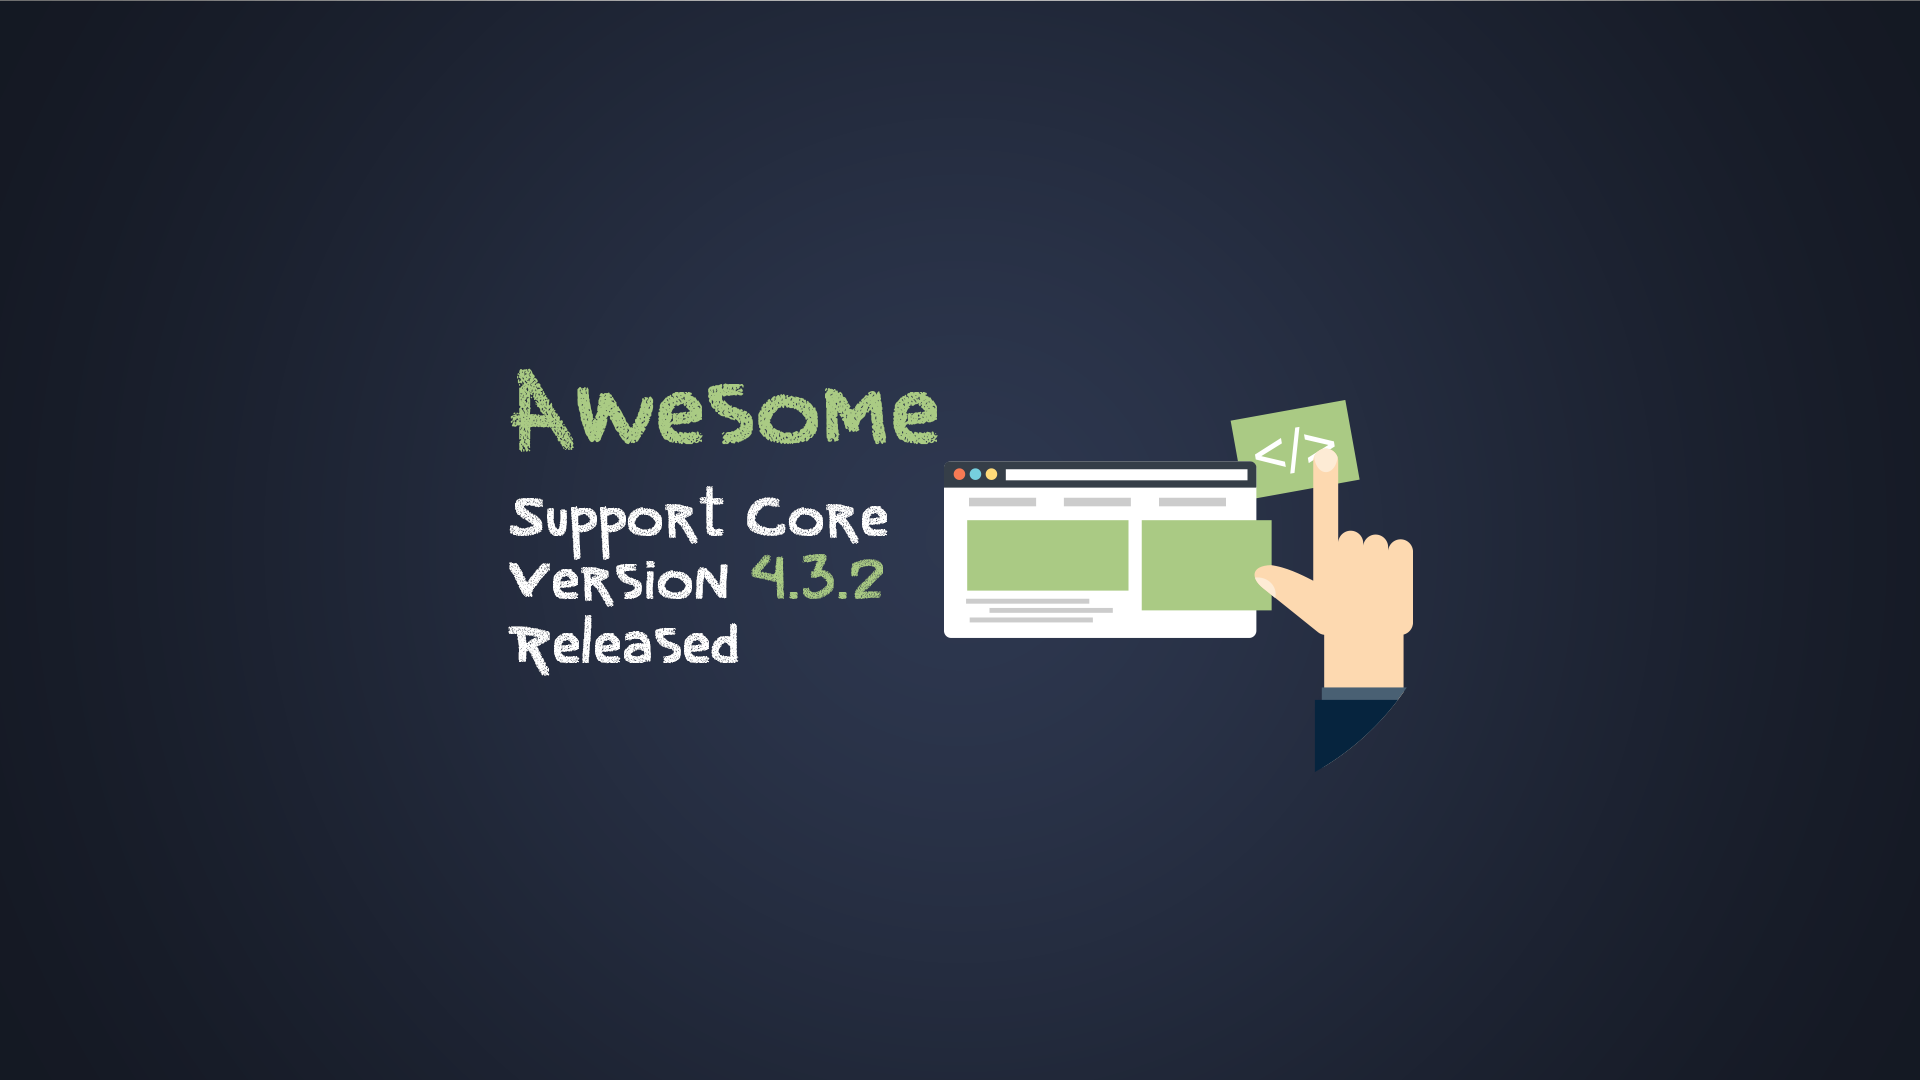 Awesome Support Core Update 4.3.2 (Includes Security Updates)